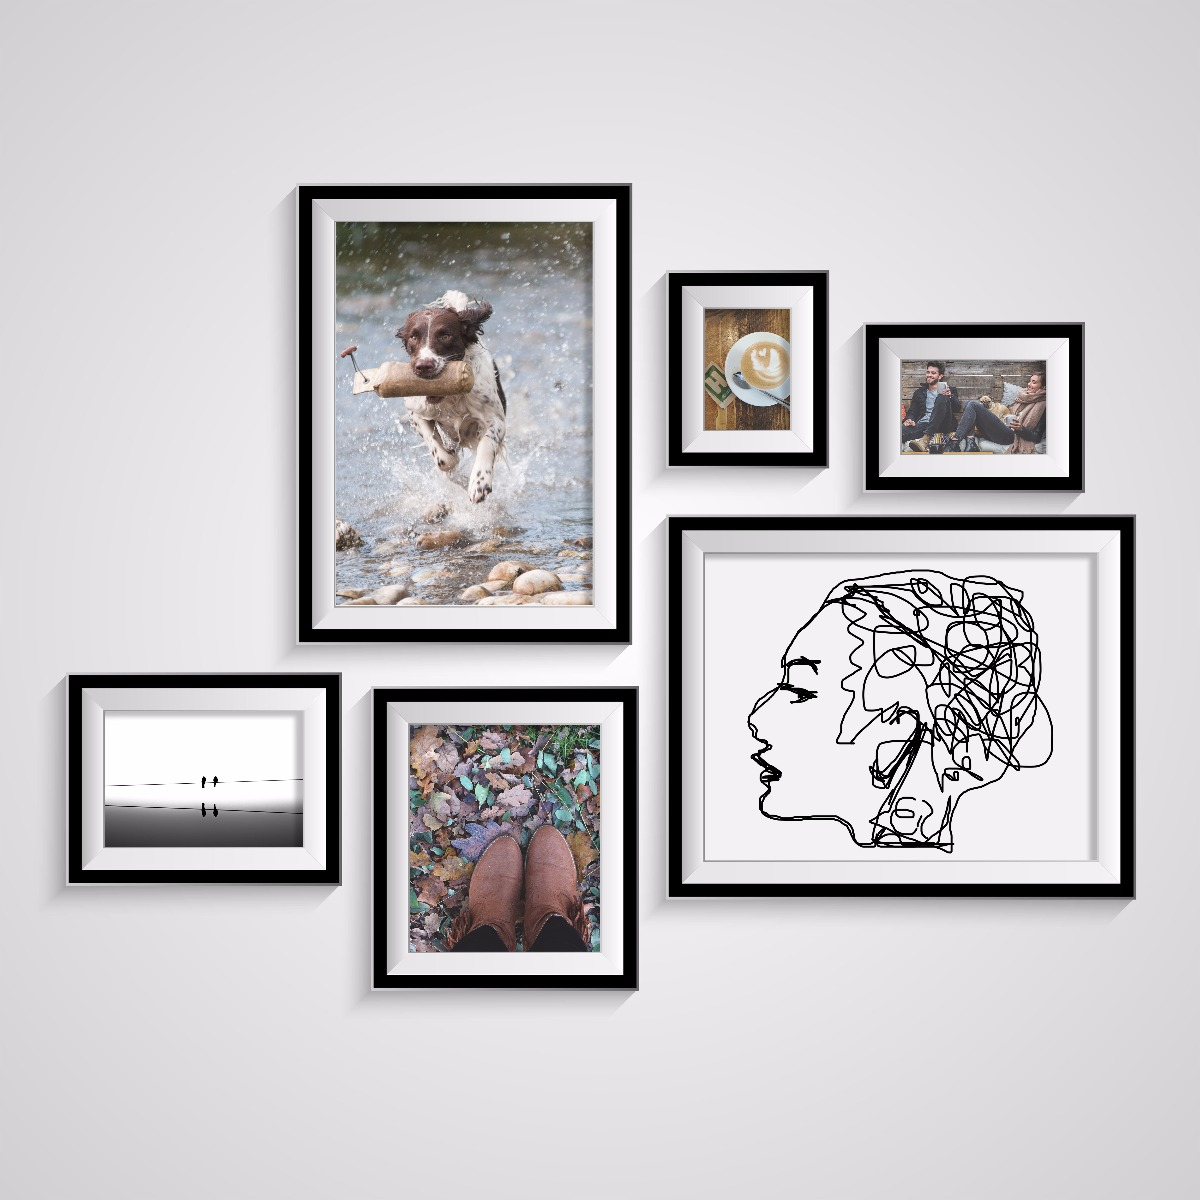 Theyu0027re Just The Right Size To Put Your Pictures Or Document On Display.  Our 11x17 Frames Are The Perfect Size To Help Make A Statement In Your Home  Or ...